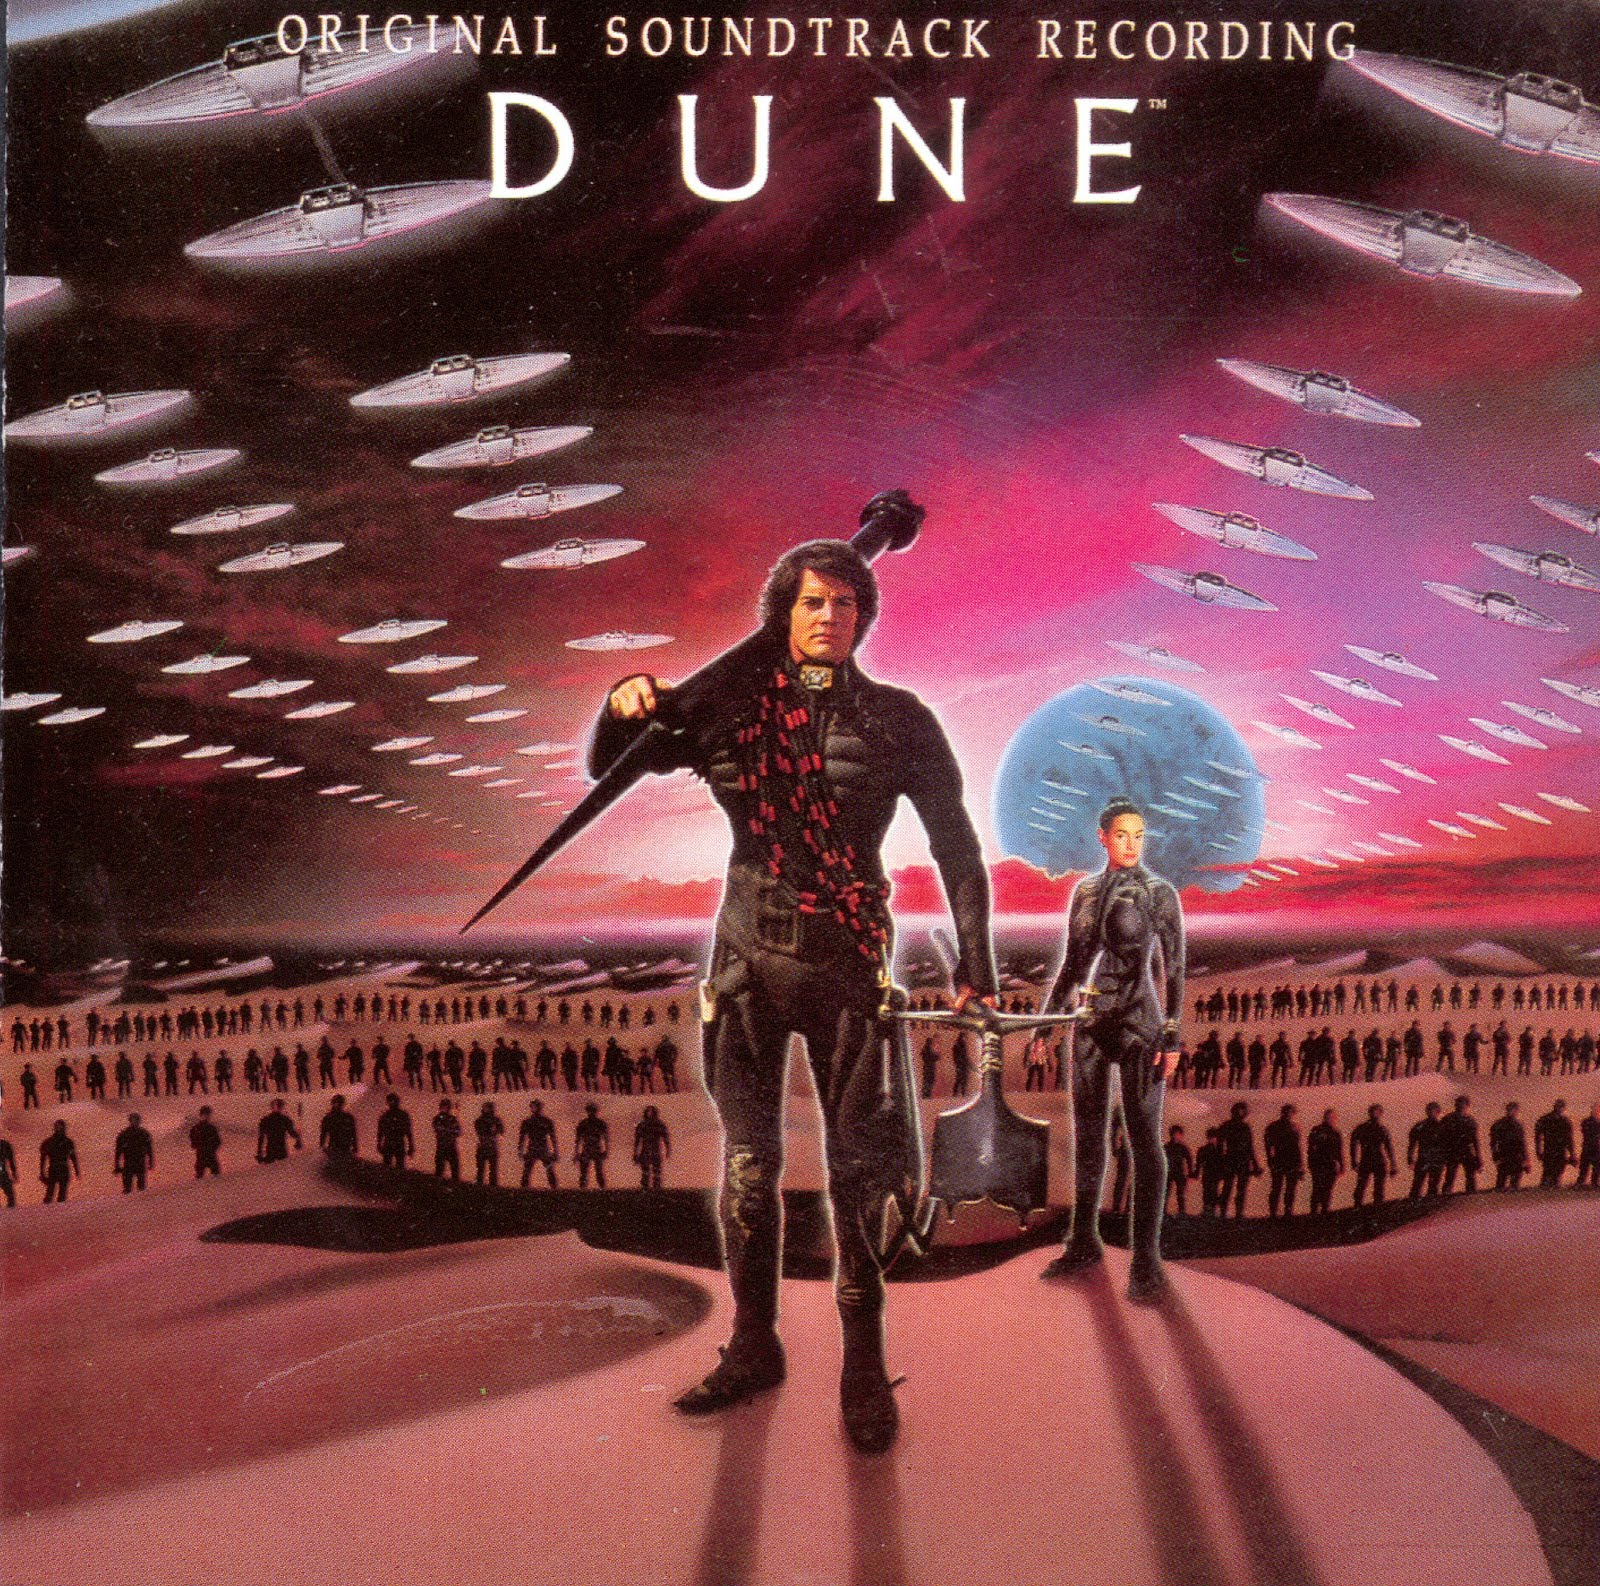 Toto S Dune Soundtrack To Get Vinyl Re Issue Fact